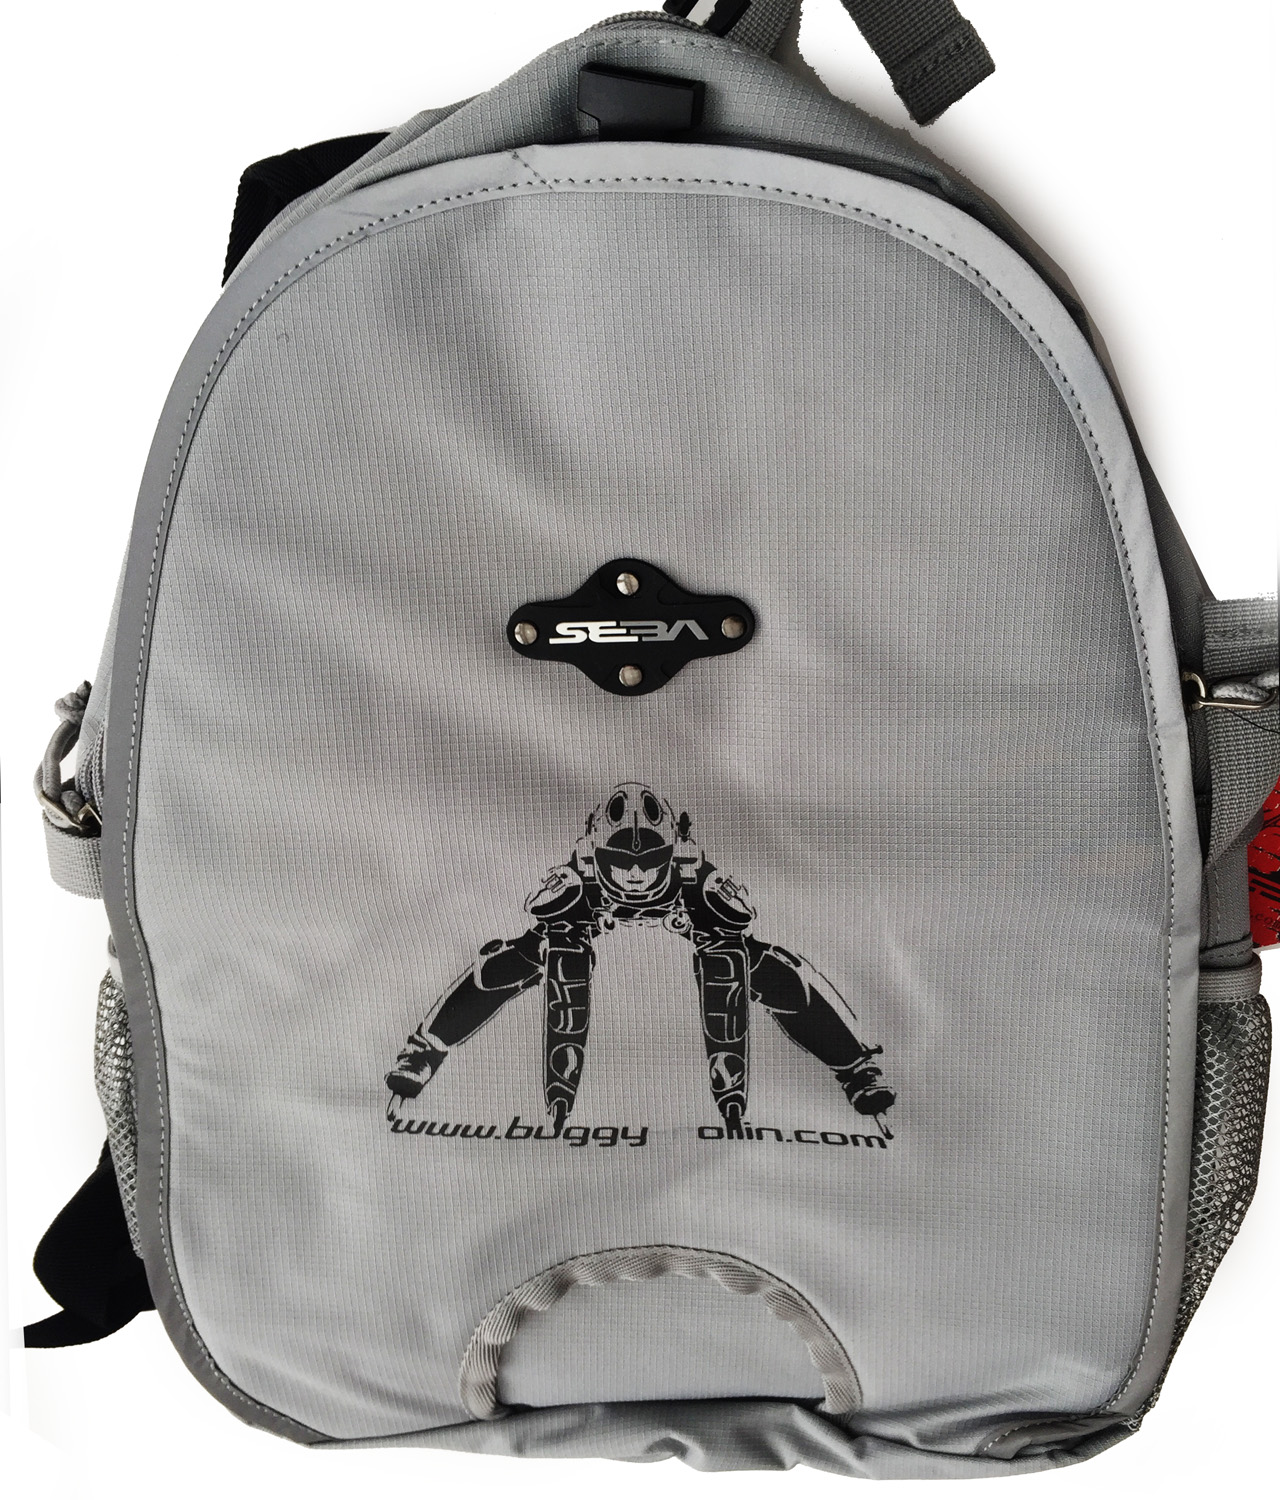 grey seba skate bag from front with buggy rollin zaphial mistake printing graphics by jean yves blondeau